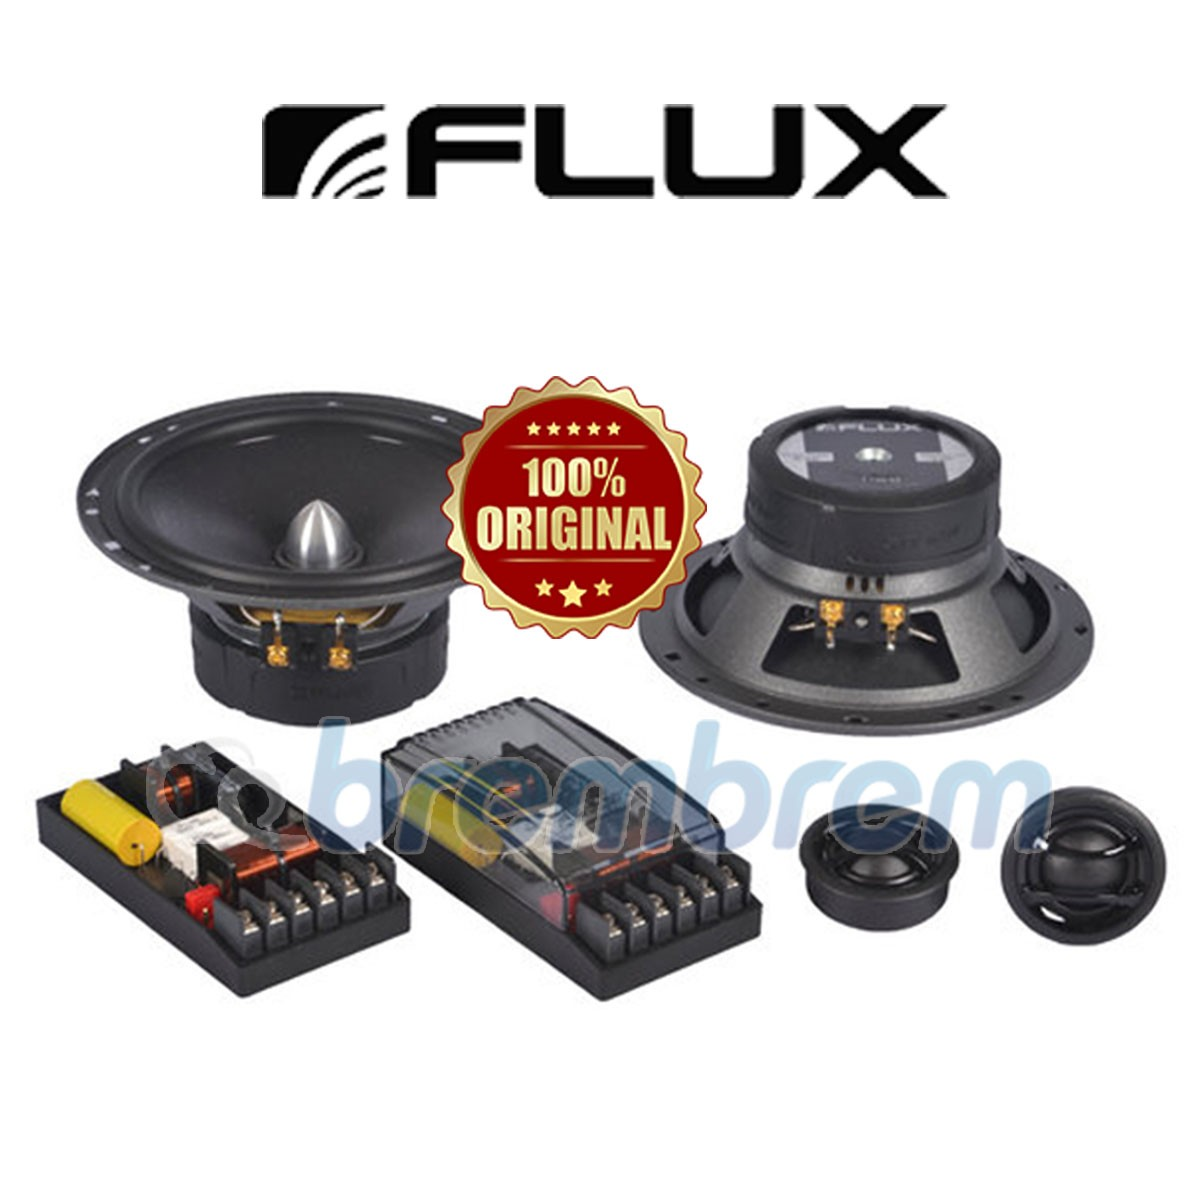 FLUX SC 261 - SPEAKER 2 WAY